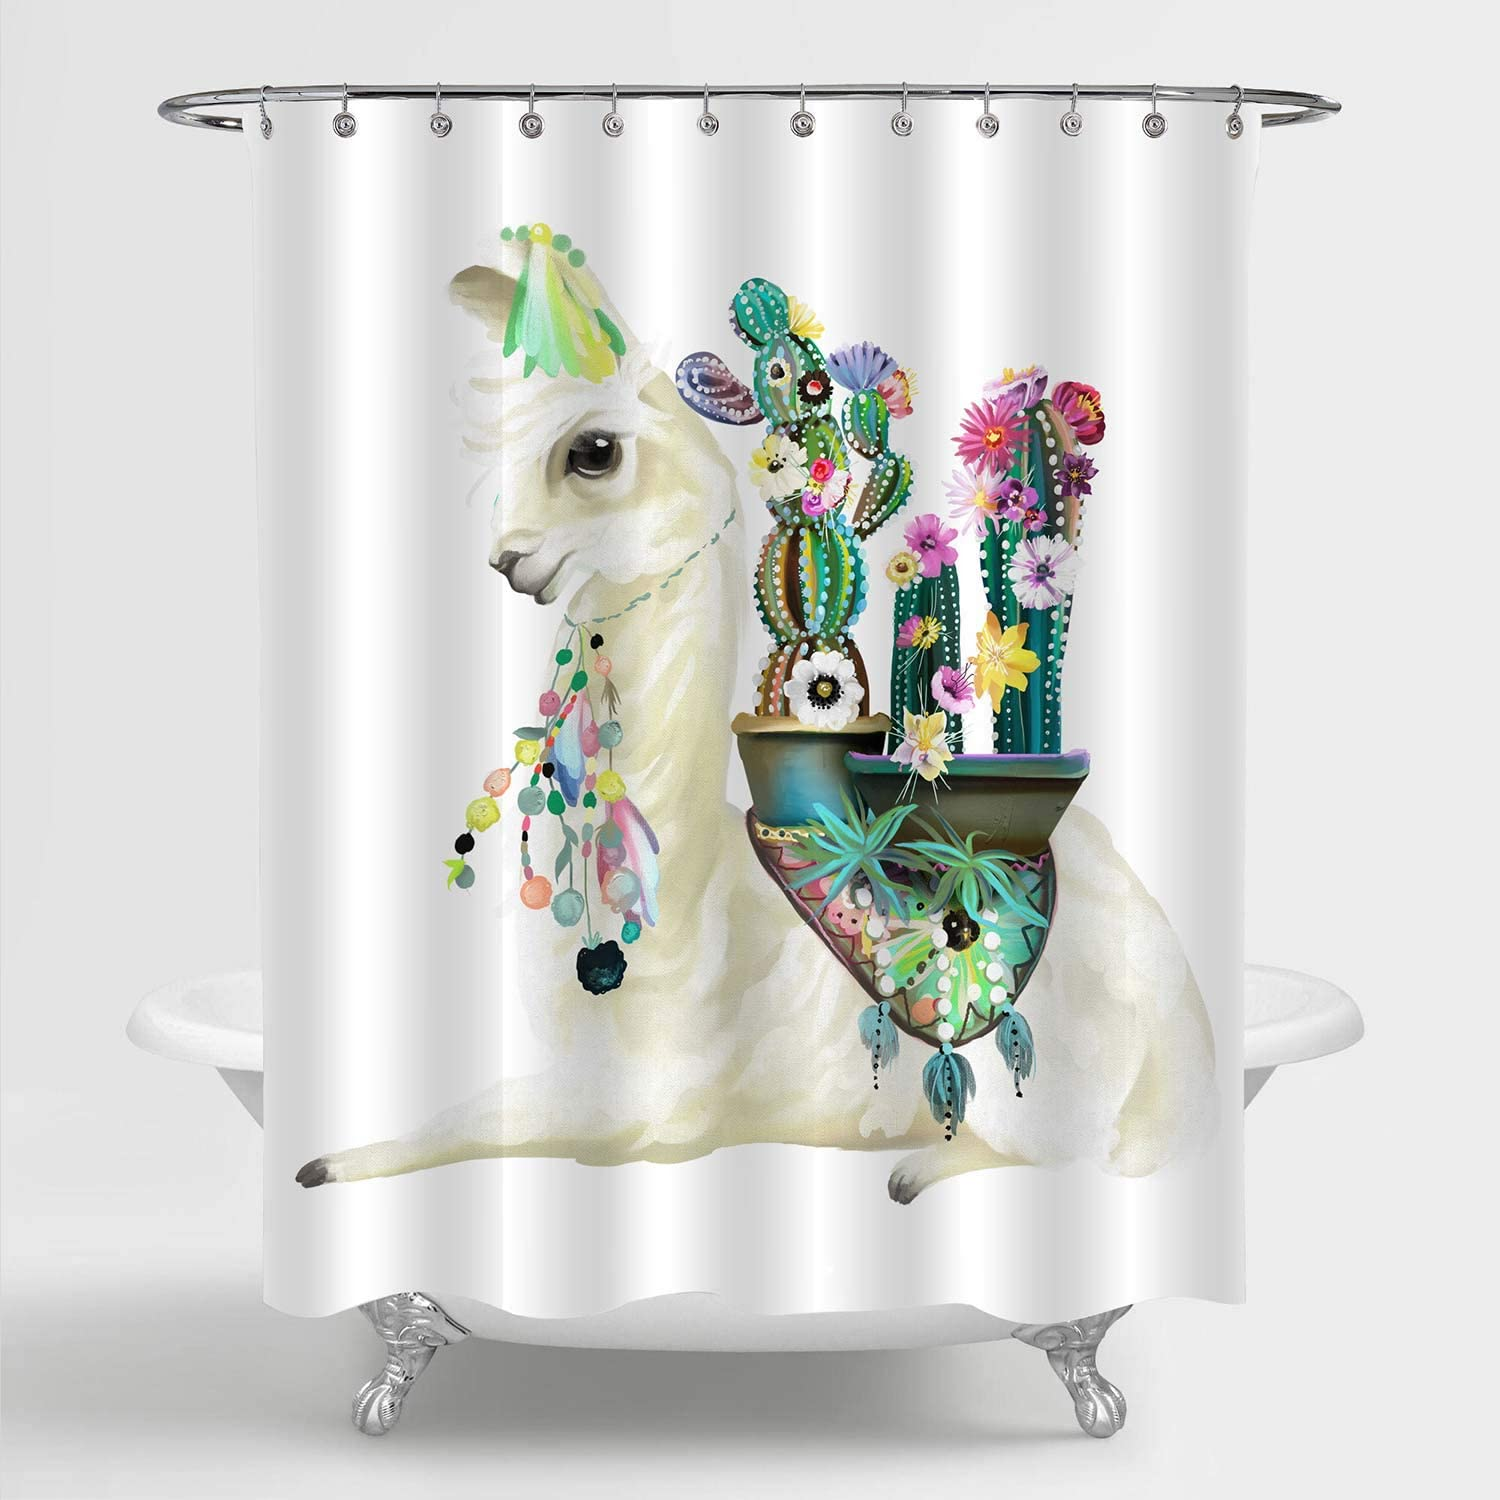 MitoVilla Mexican Llama Cactus Shower Curtain Set with Hooks, Llama with  Ethnic Blanket, Cactus and Boho Feathers Bathroom Decor, Llama Gifts for